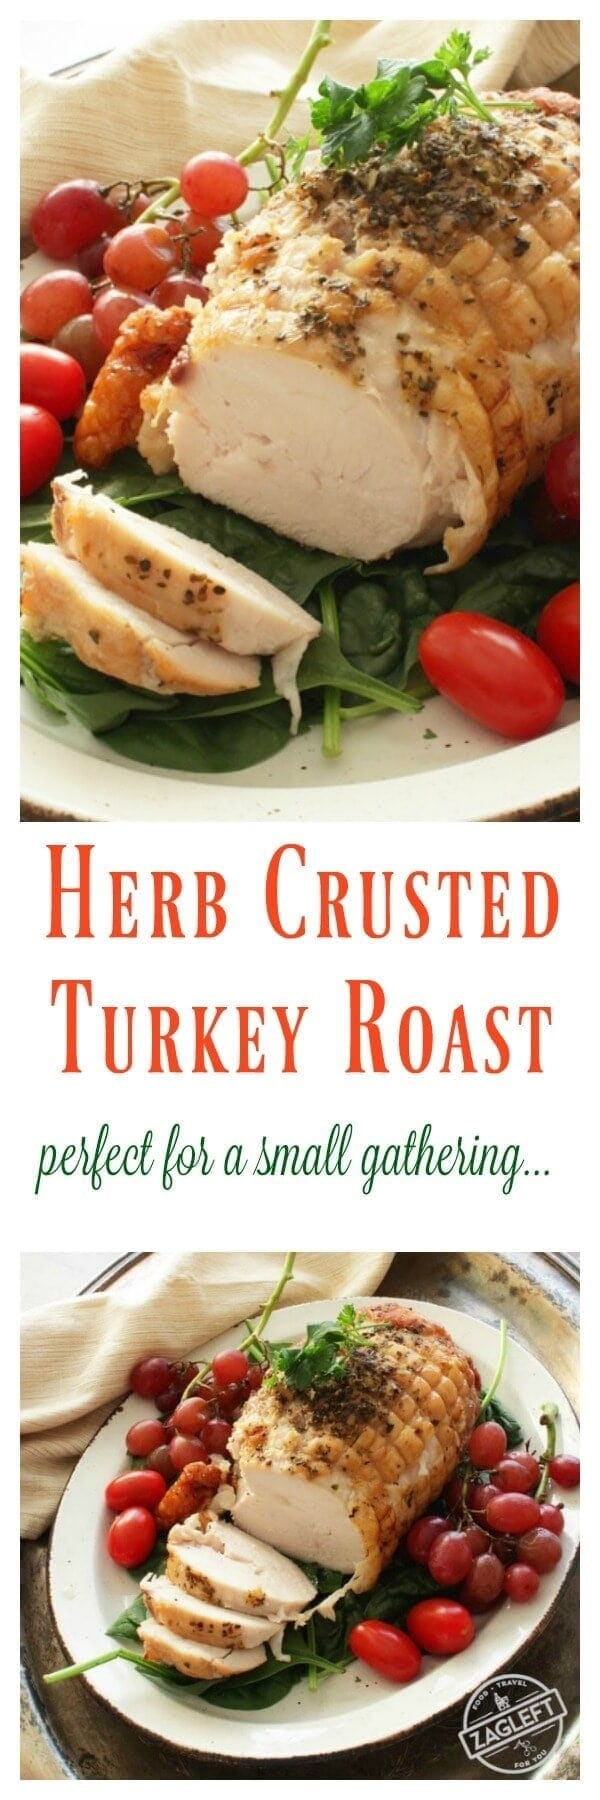 Herb Crusted Turkey Roast - perfect for serving a small group. | Visit www.onedishkitchen.com for other single serving recipes.